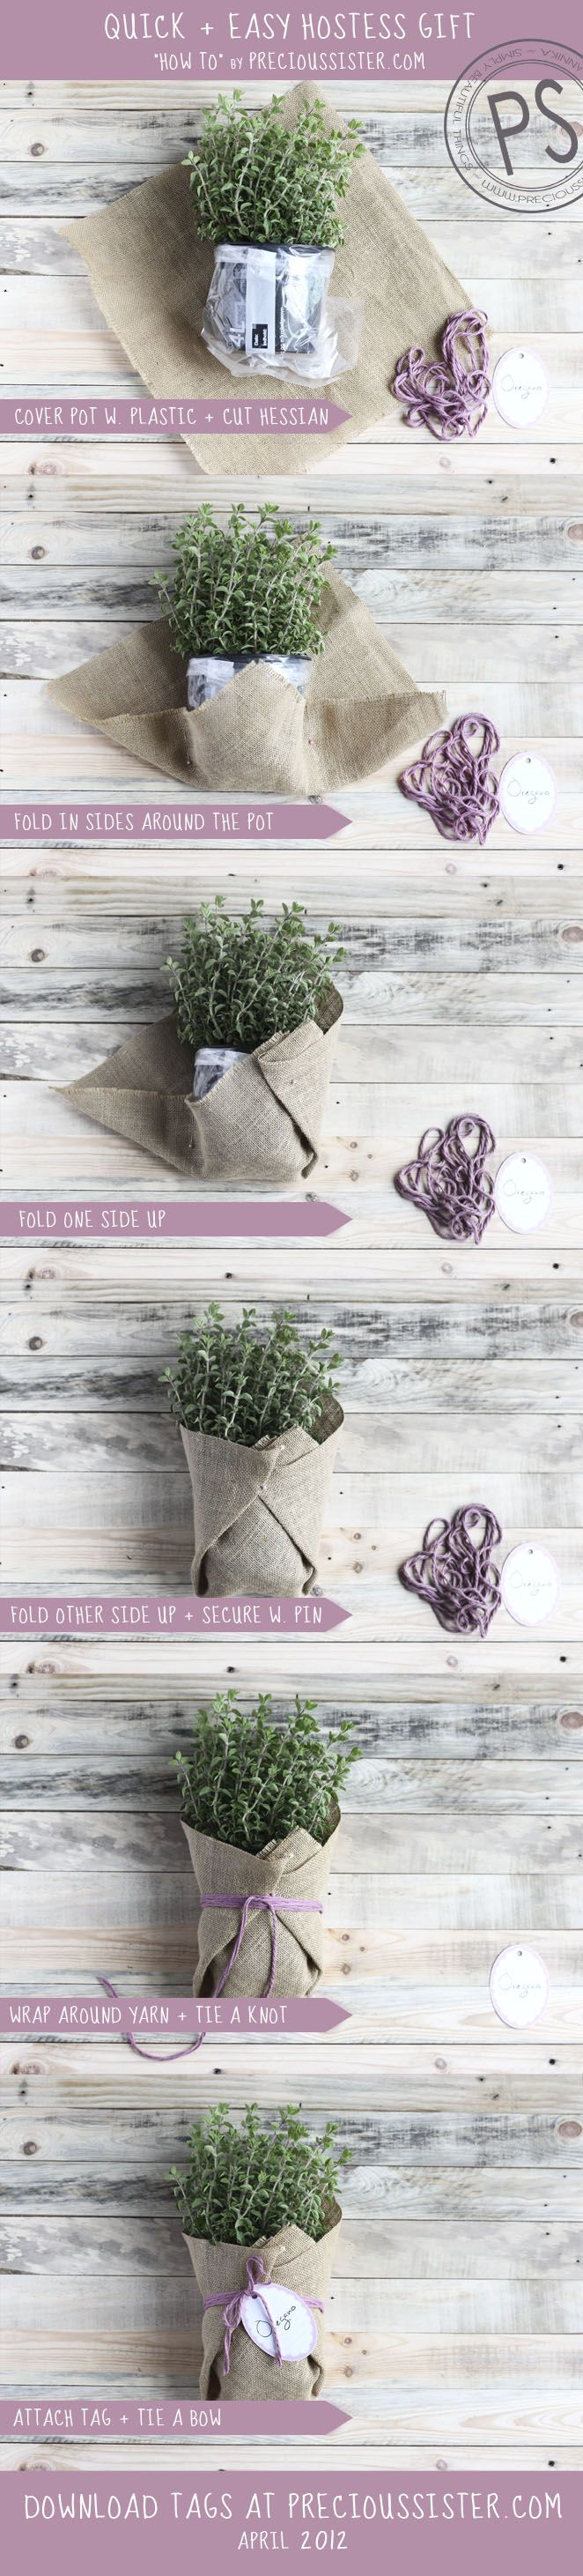 A QUICK AND EASY HOSTESS GIFT. Home & Garden | Precious Sister